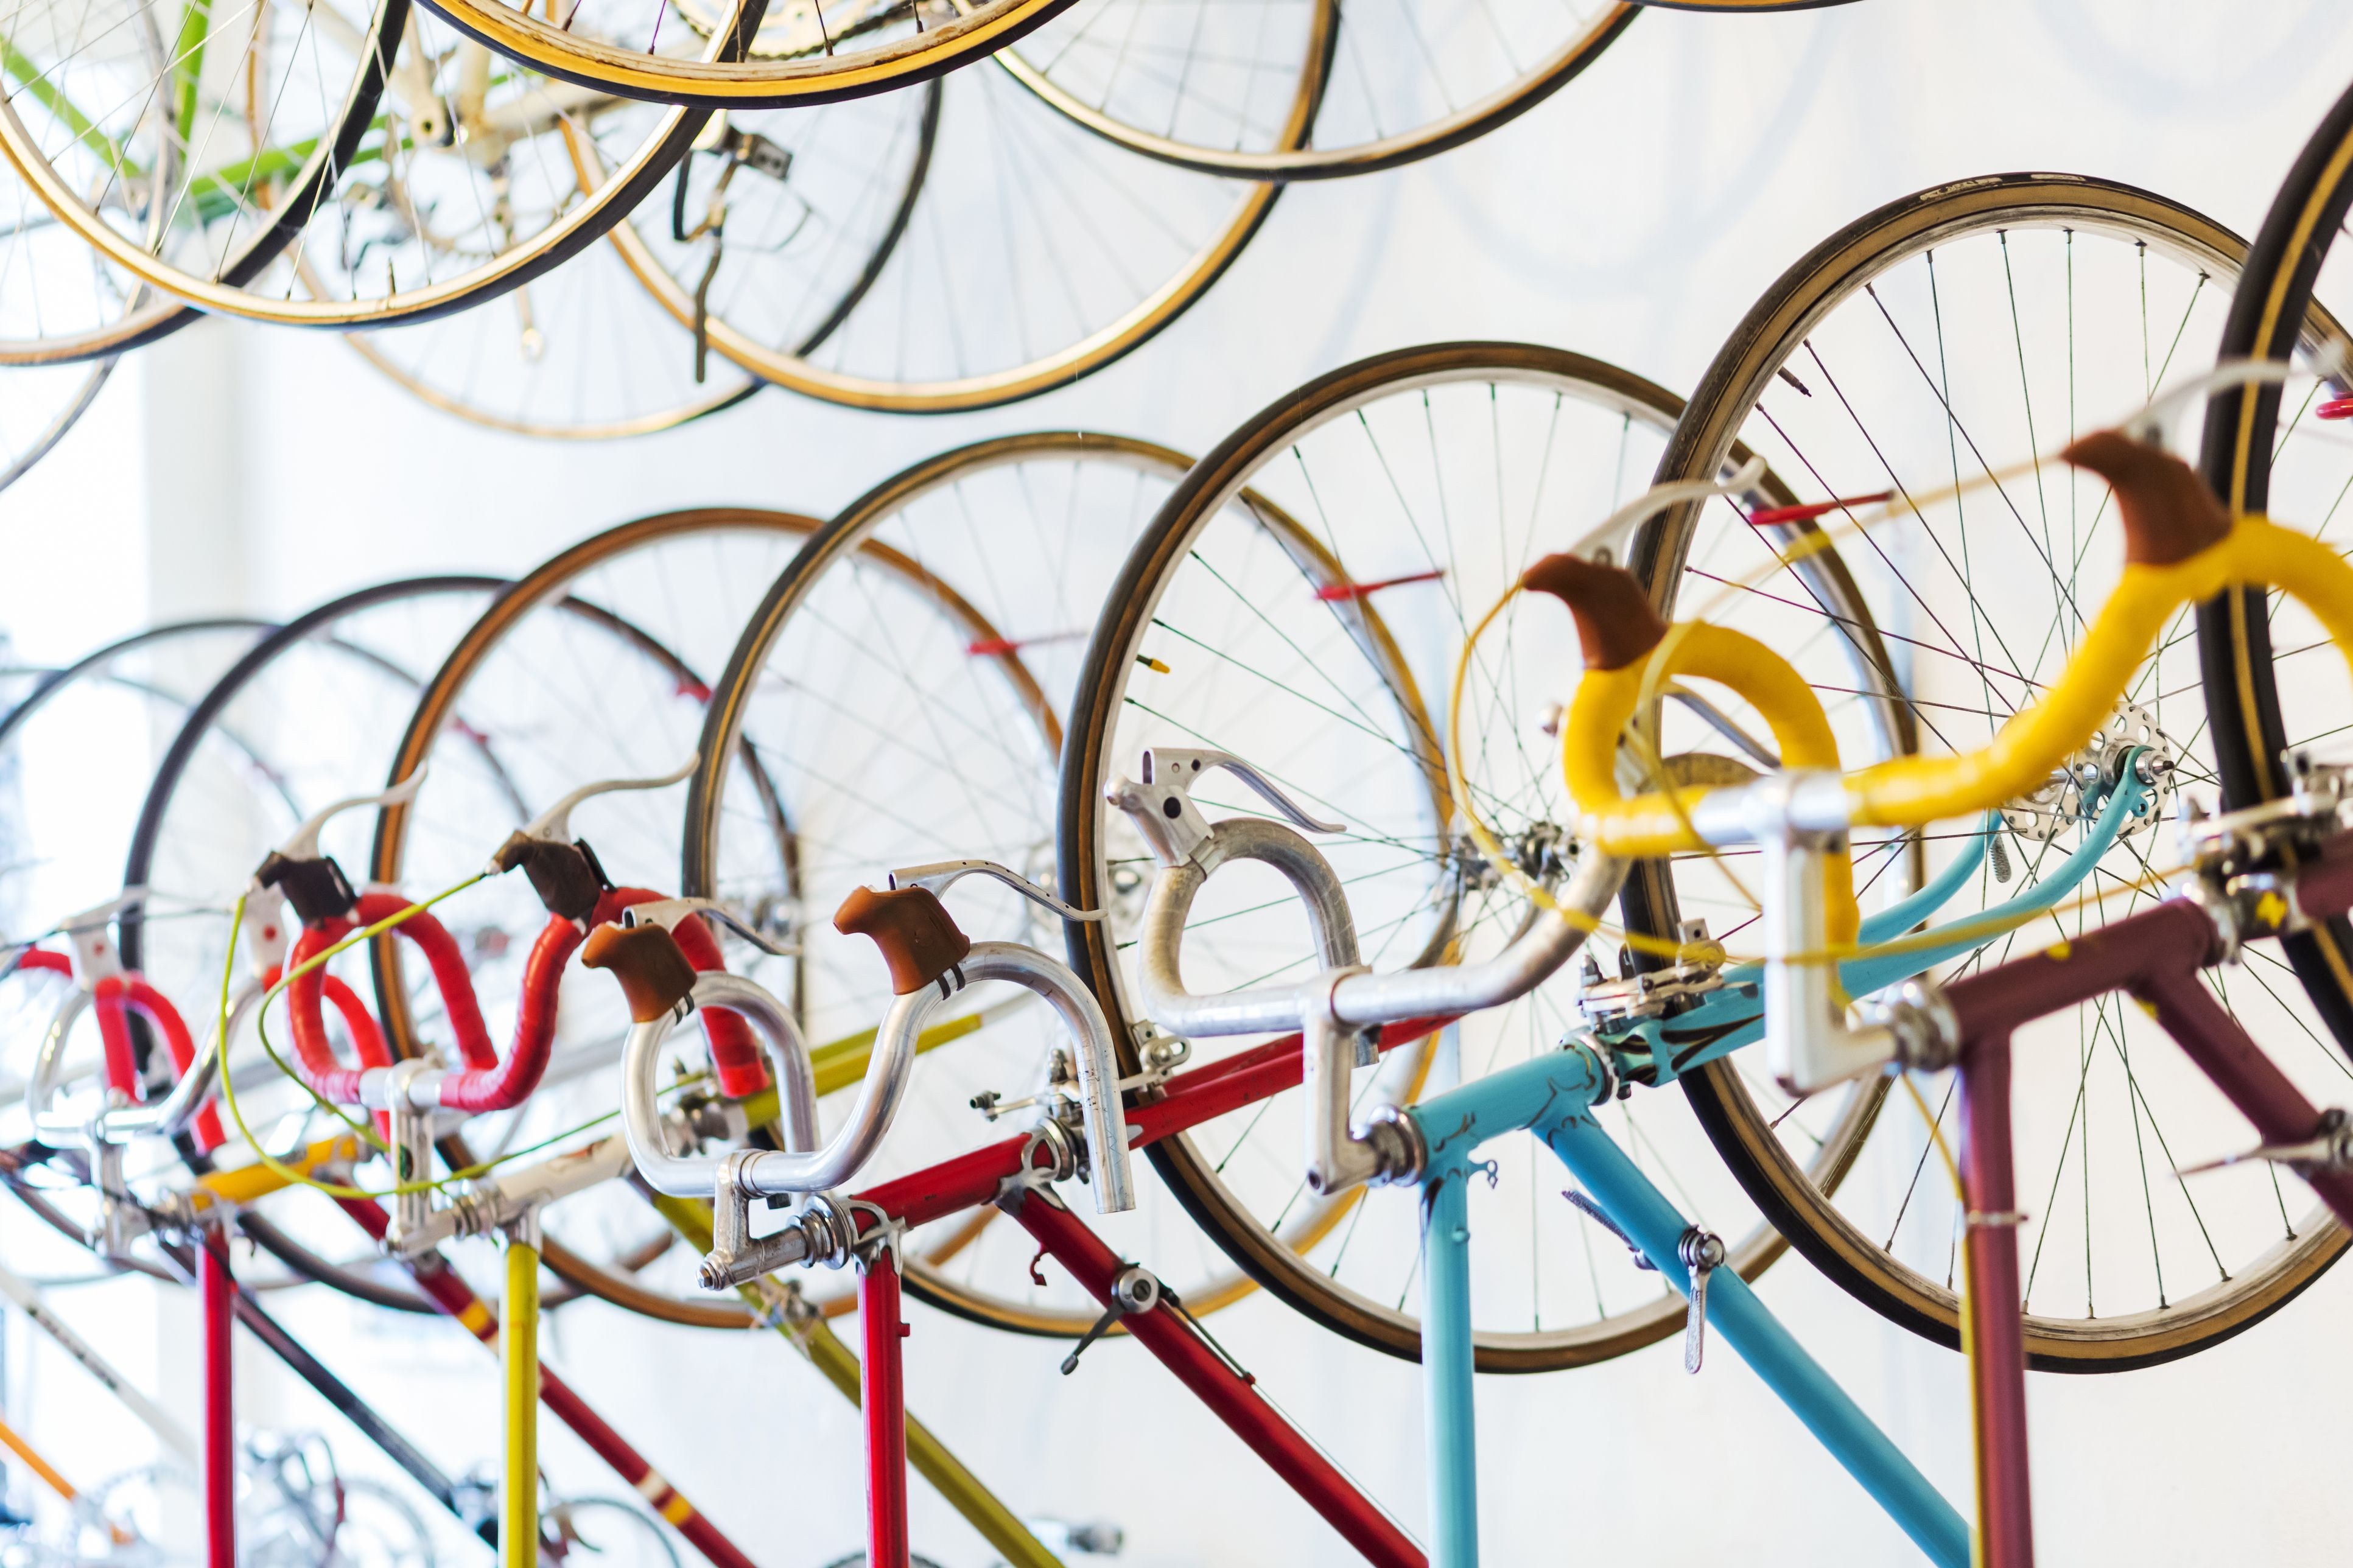 5 Easy Ways To Store Your Bike